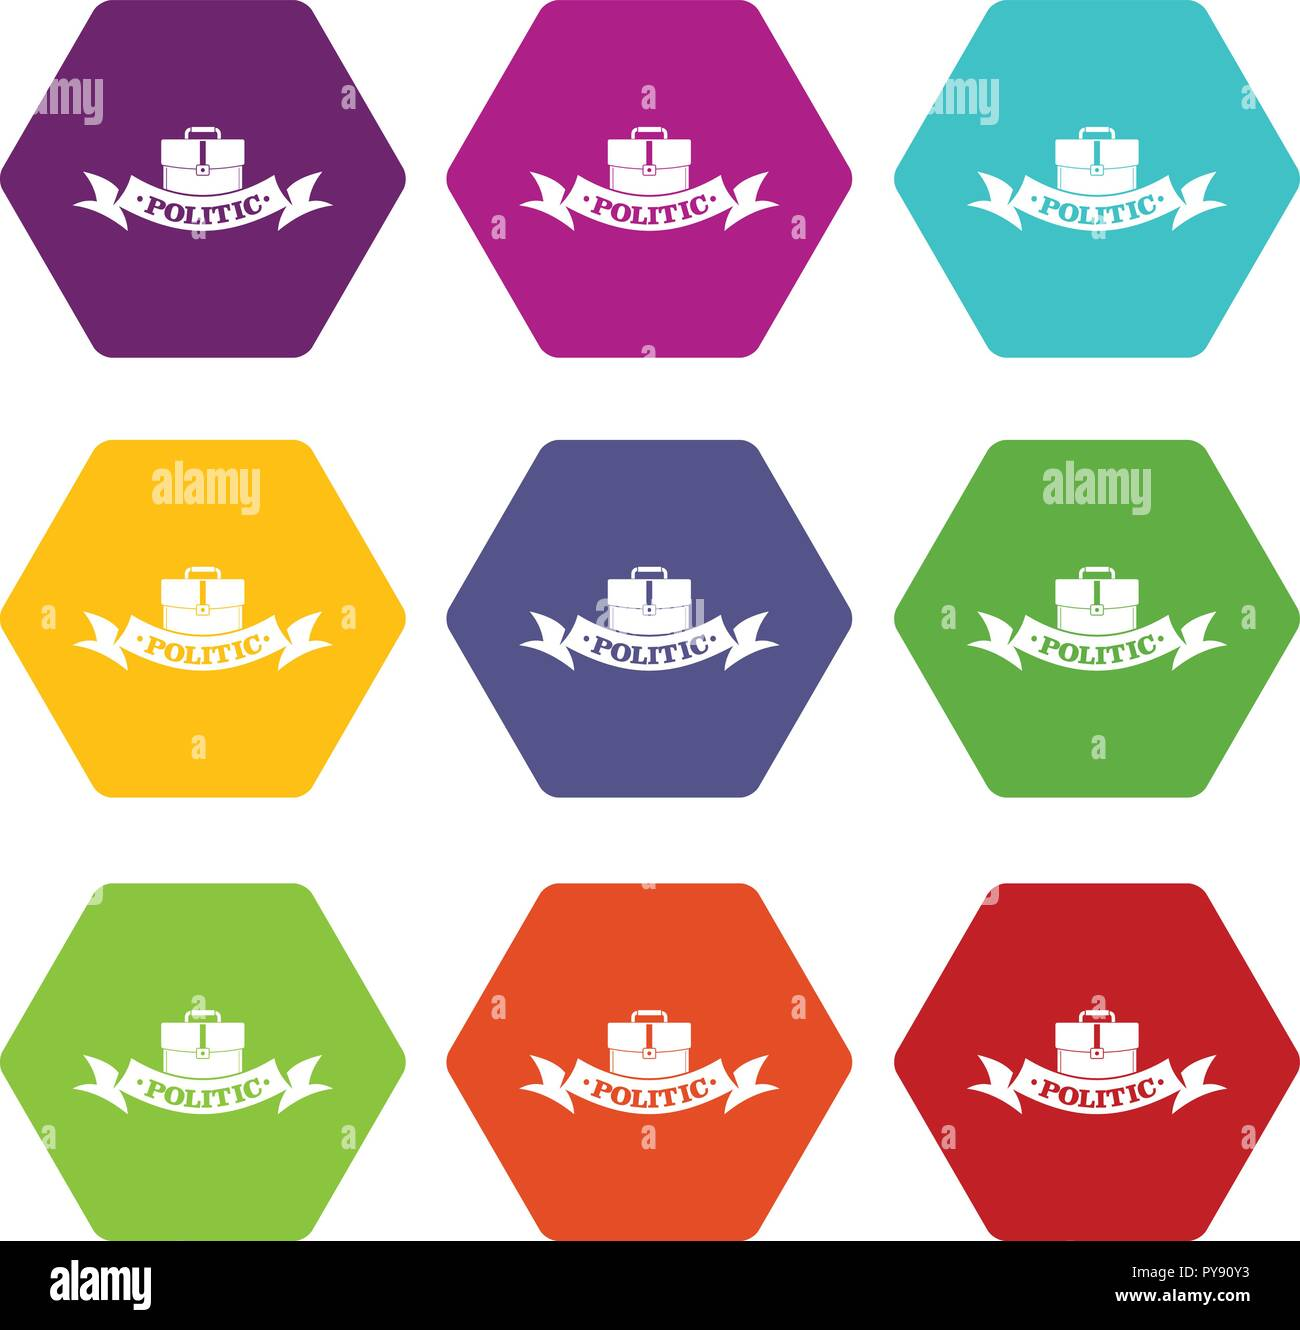 Politic icons set 9 vector - Stock Image